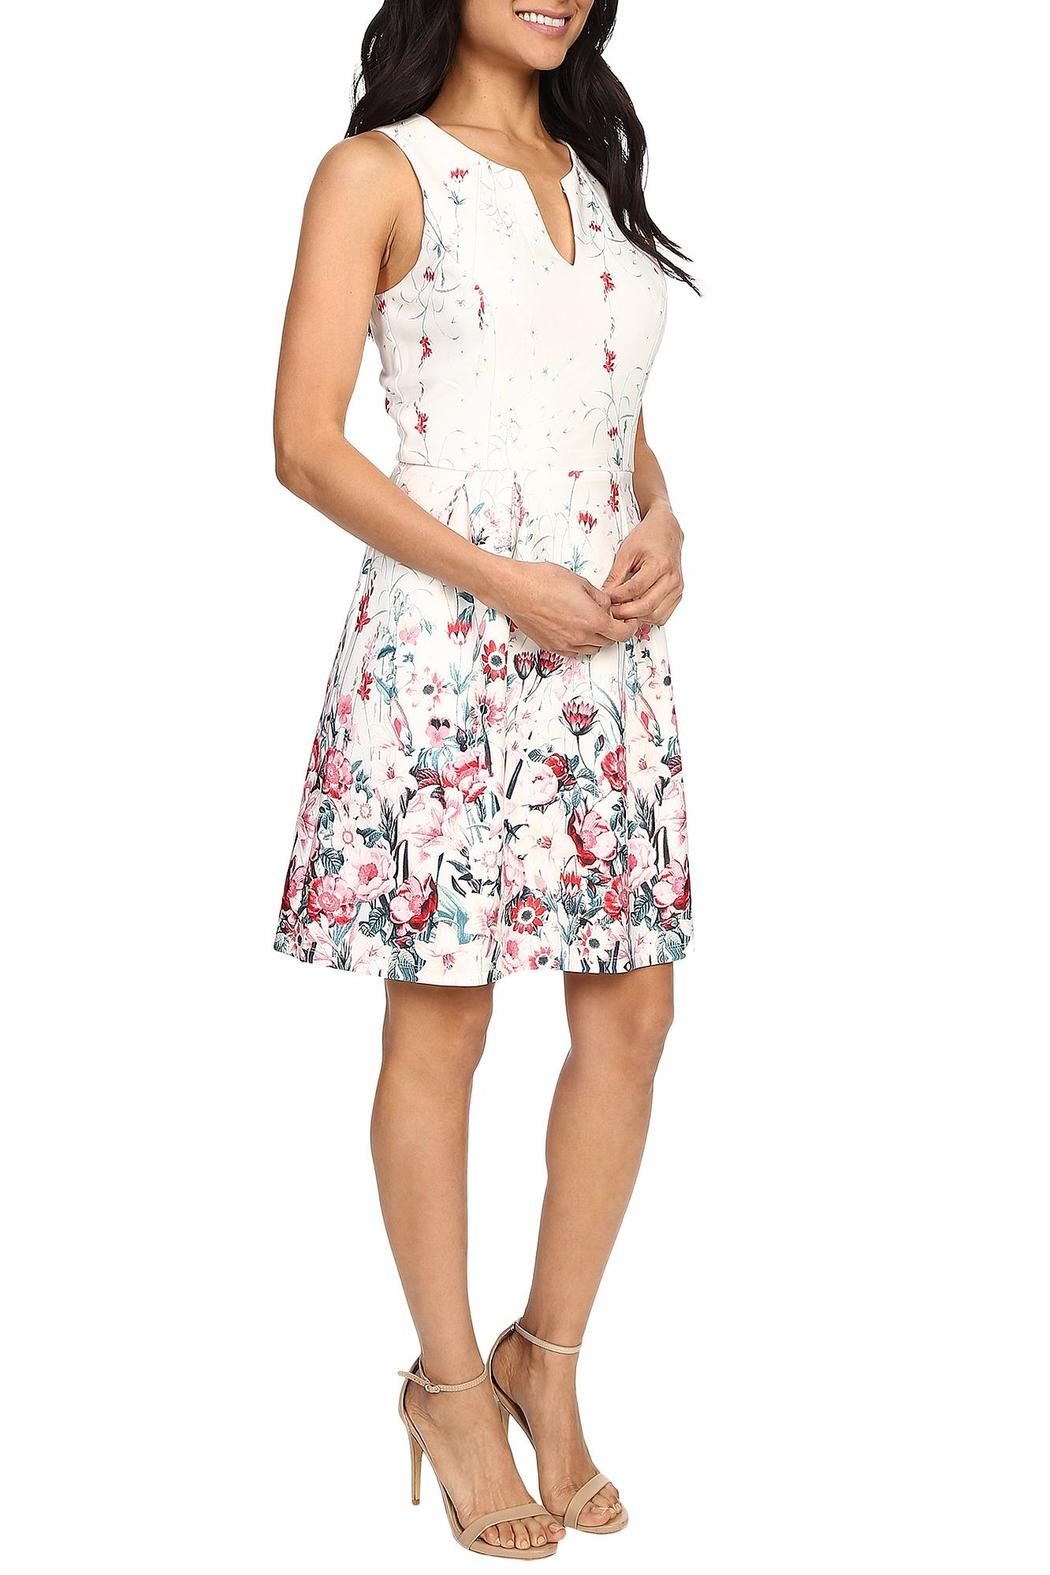 Kut from the Kloth Lana Floral Dress - Side Cropped Image